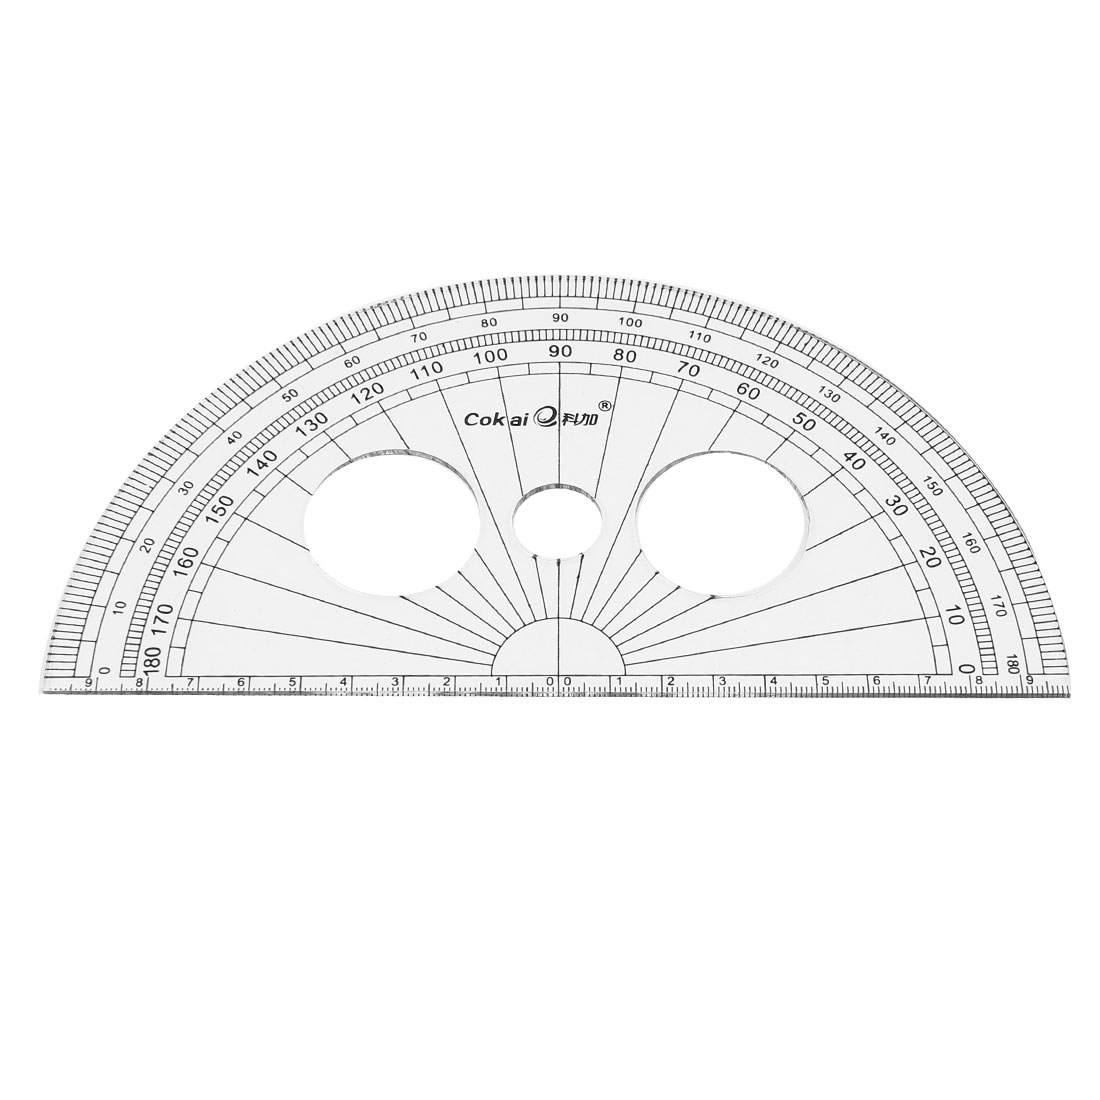 Unique Bargains Plastic School Office 0-180 Degree Protractor Ruler Stationery 20cm Clear